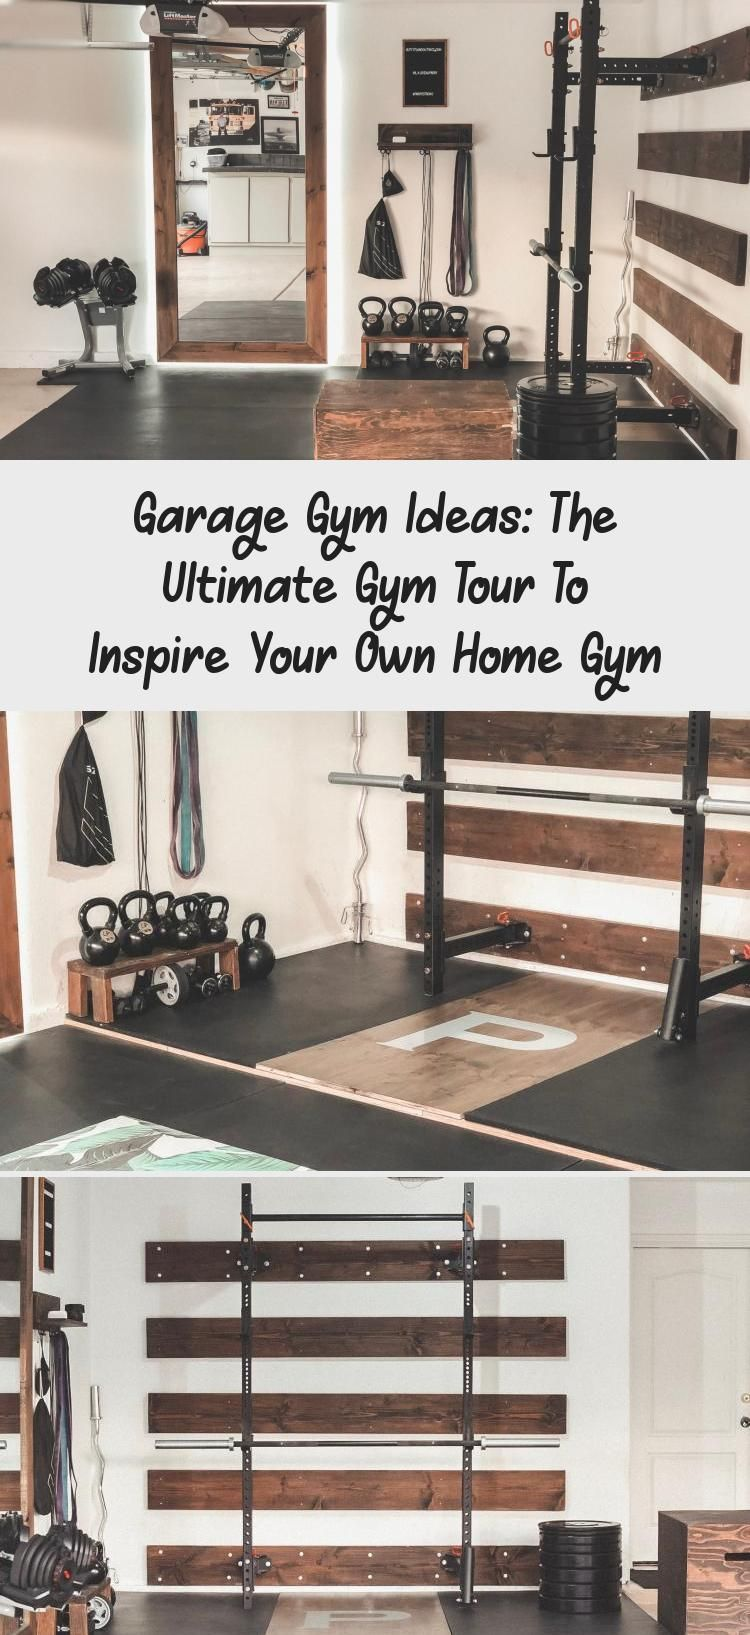 Garage Gym Ideas for your Home Gym | Outfits & Outings #homegymOrganization #hom...,  #BestHomeGym #Garage #gym #hom #home #HomeGymDecor #HomeGymDesign #HomeGymGarage #HomeGymideas #homegymOrganization #ideas #outfits #Outings #SmallHomeGym